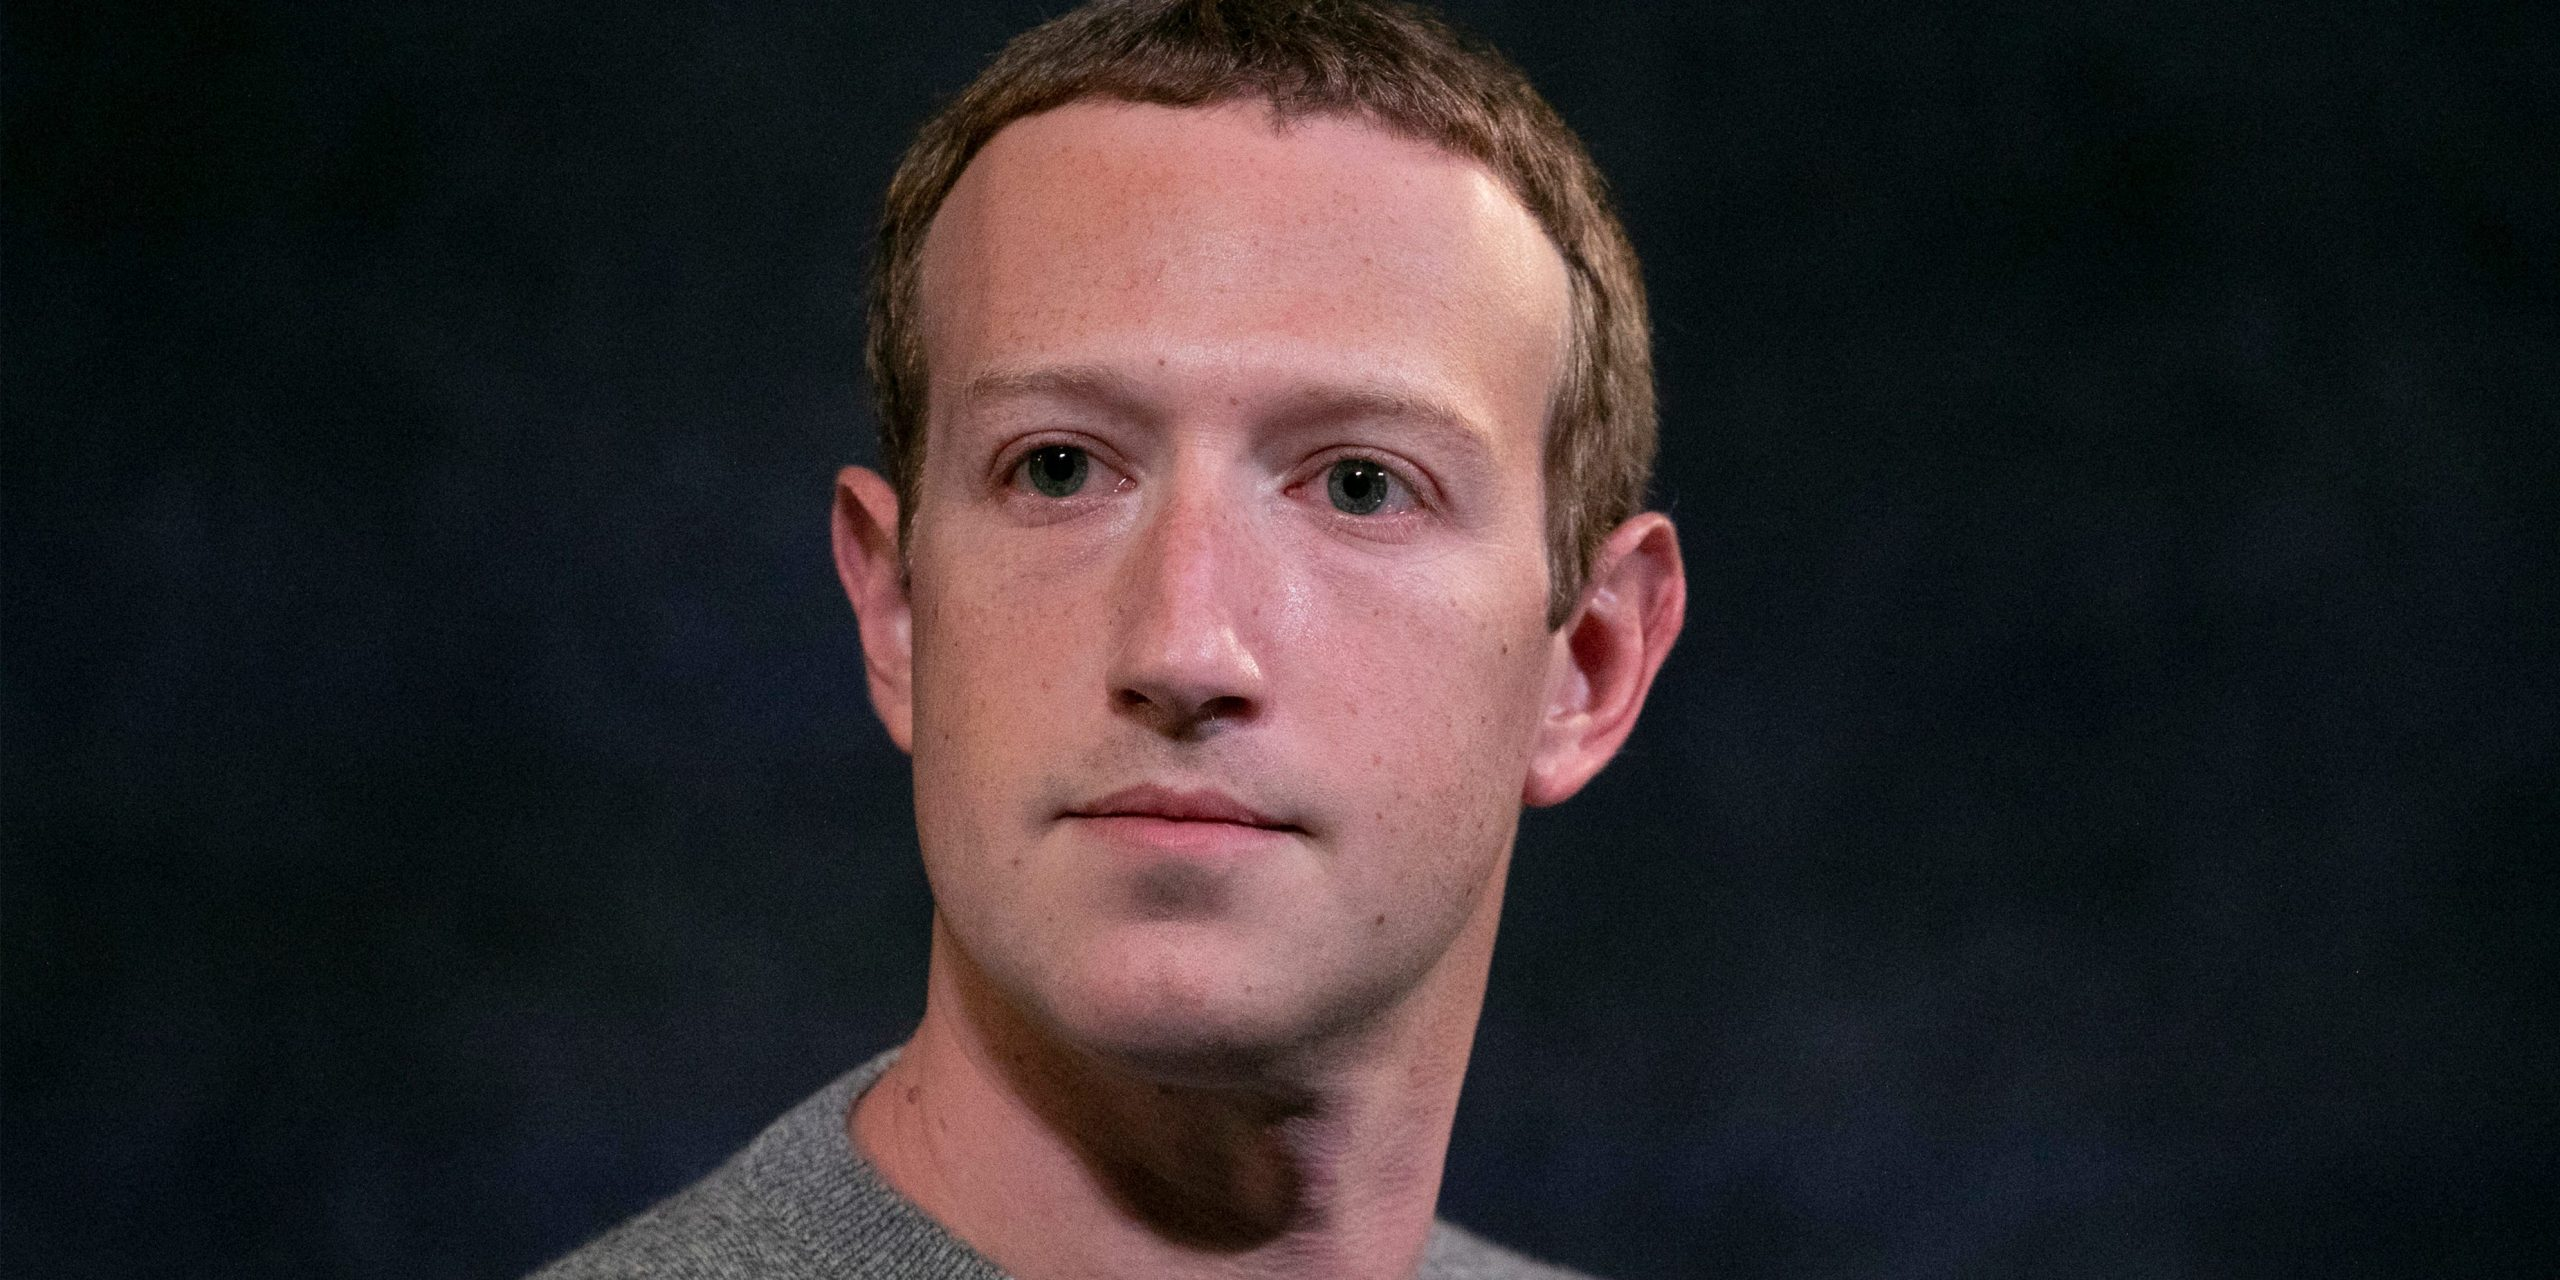 Facebook whistleblower says Mark Zuckerberg 'never set out to make a hateful platform' but that he allows choices that give hateful content more reach